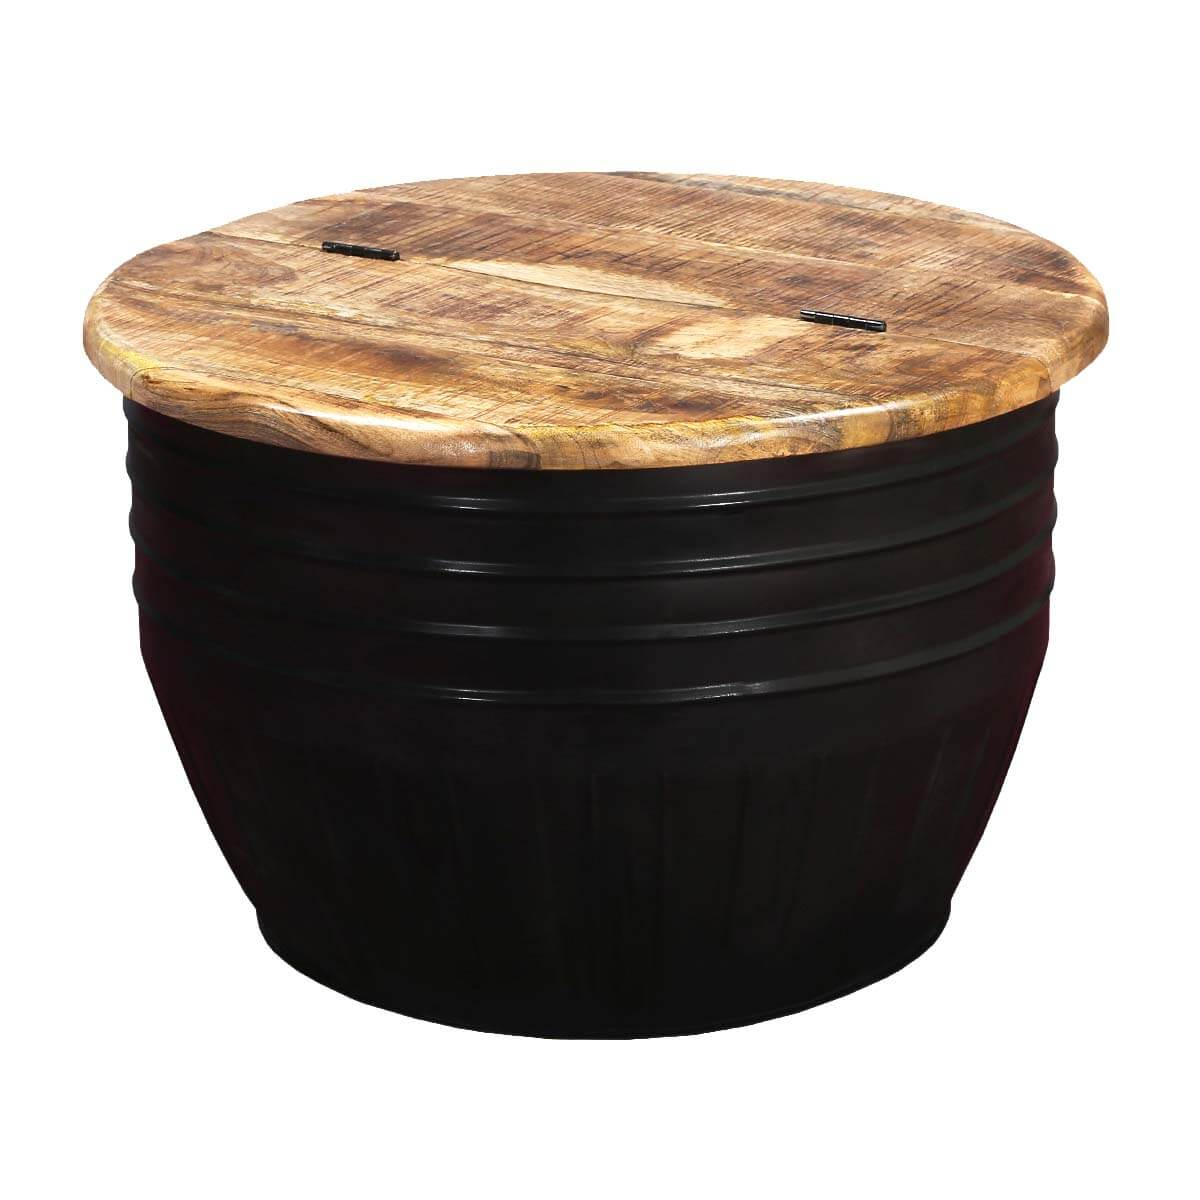 Nebraska Solid Wood and Iron Black Round Accent Coffee Table